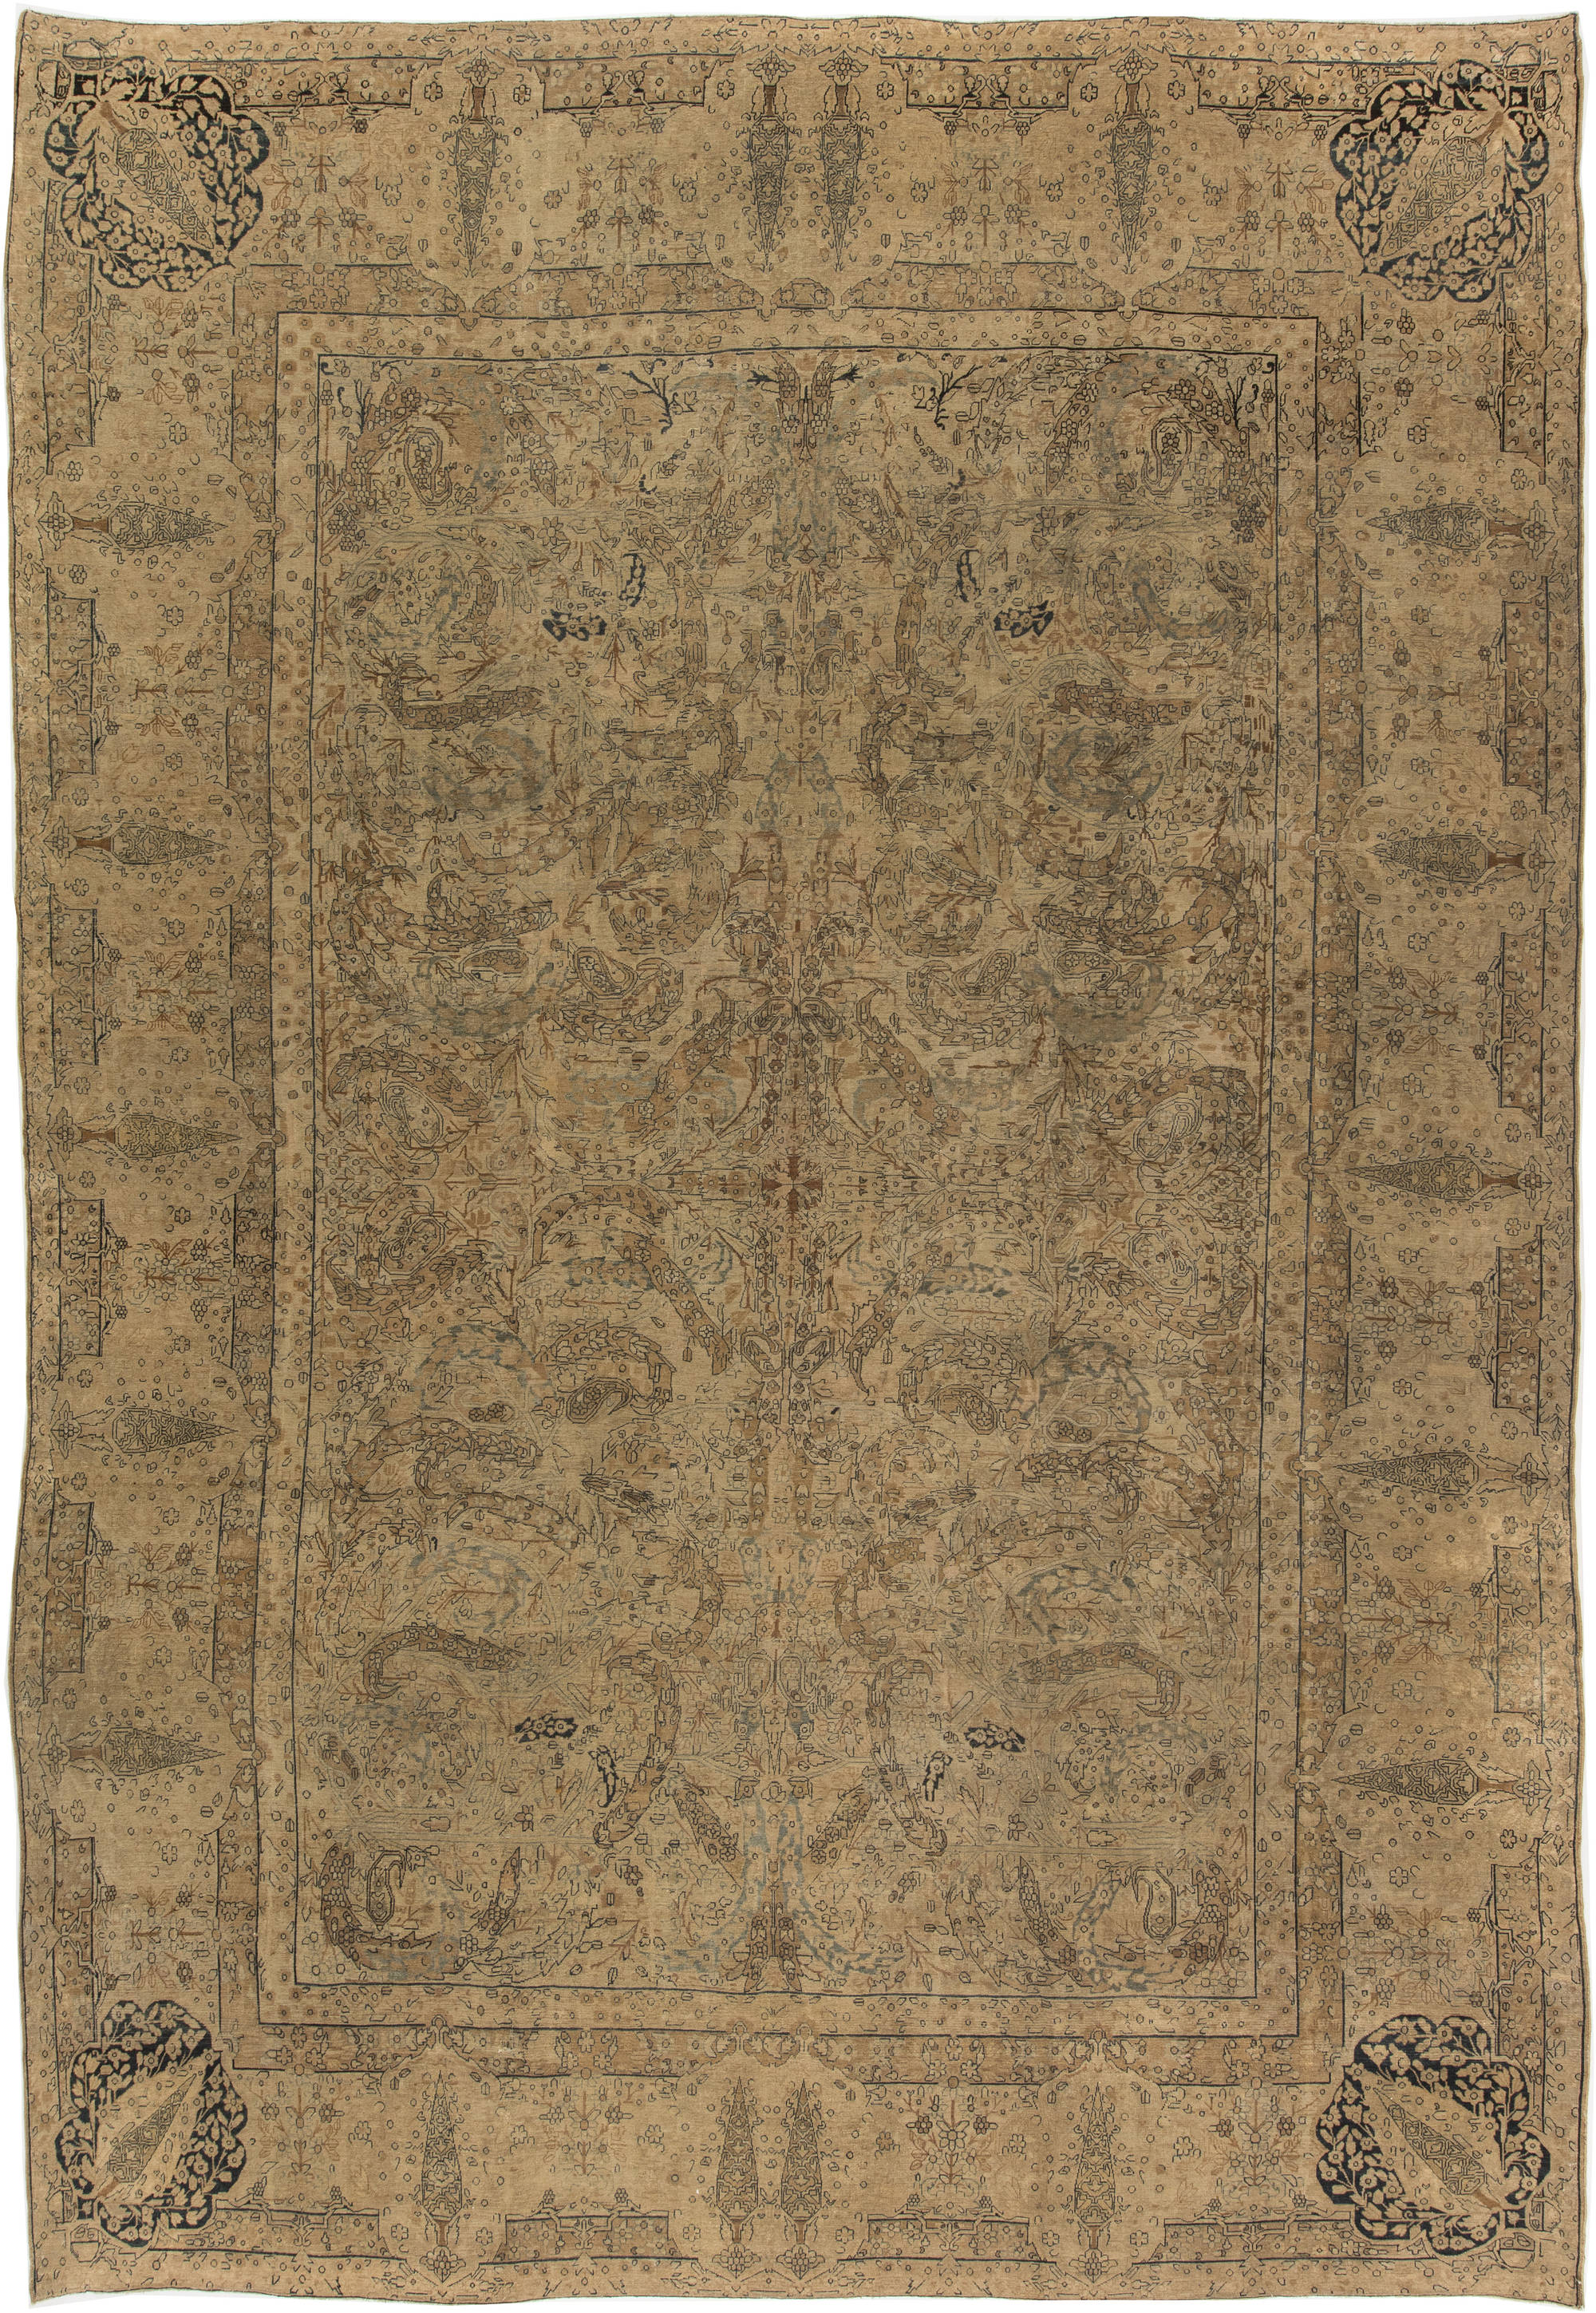 Antique Persian Kirman Rug BB4002